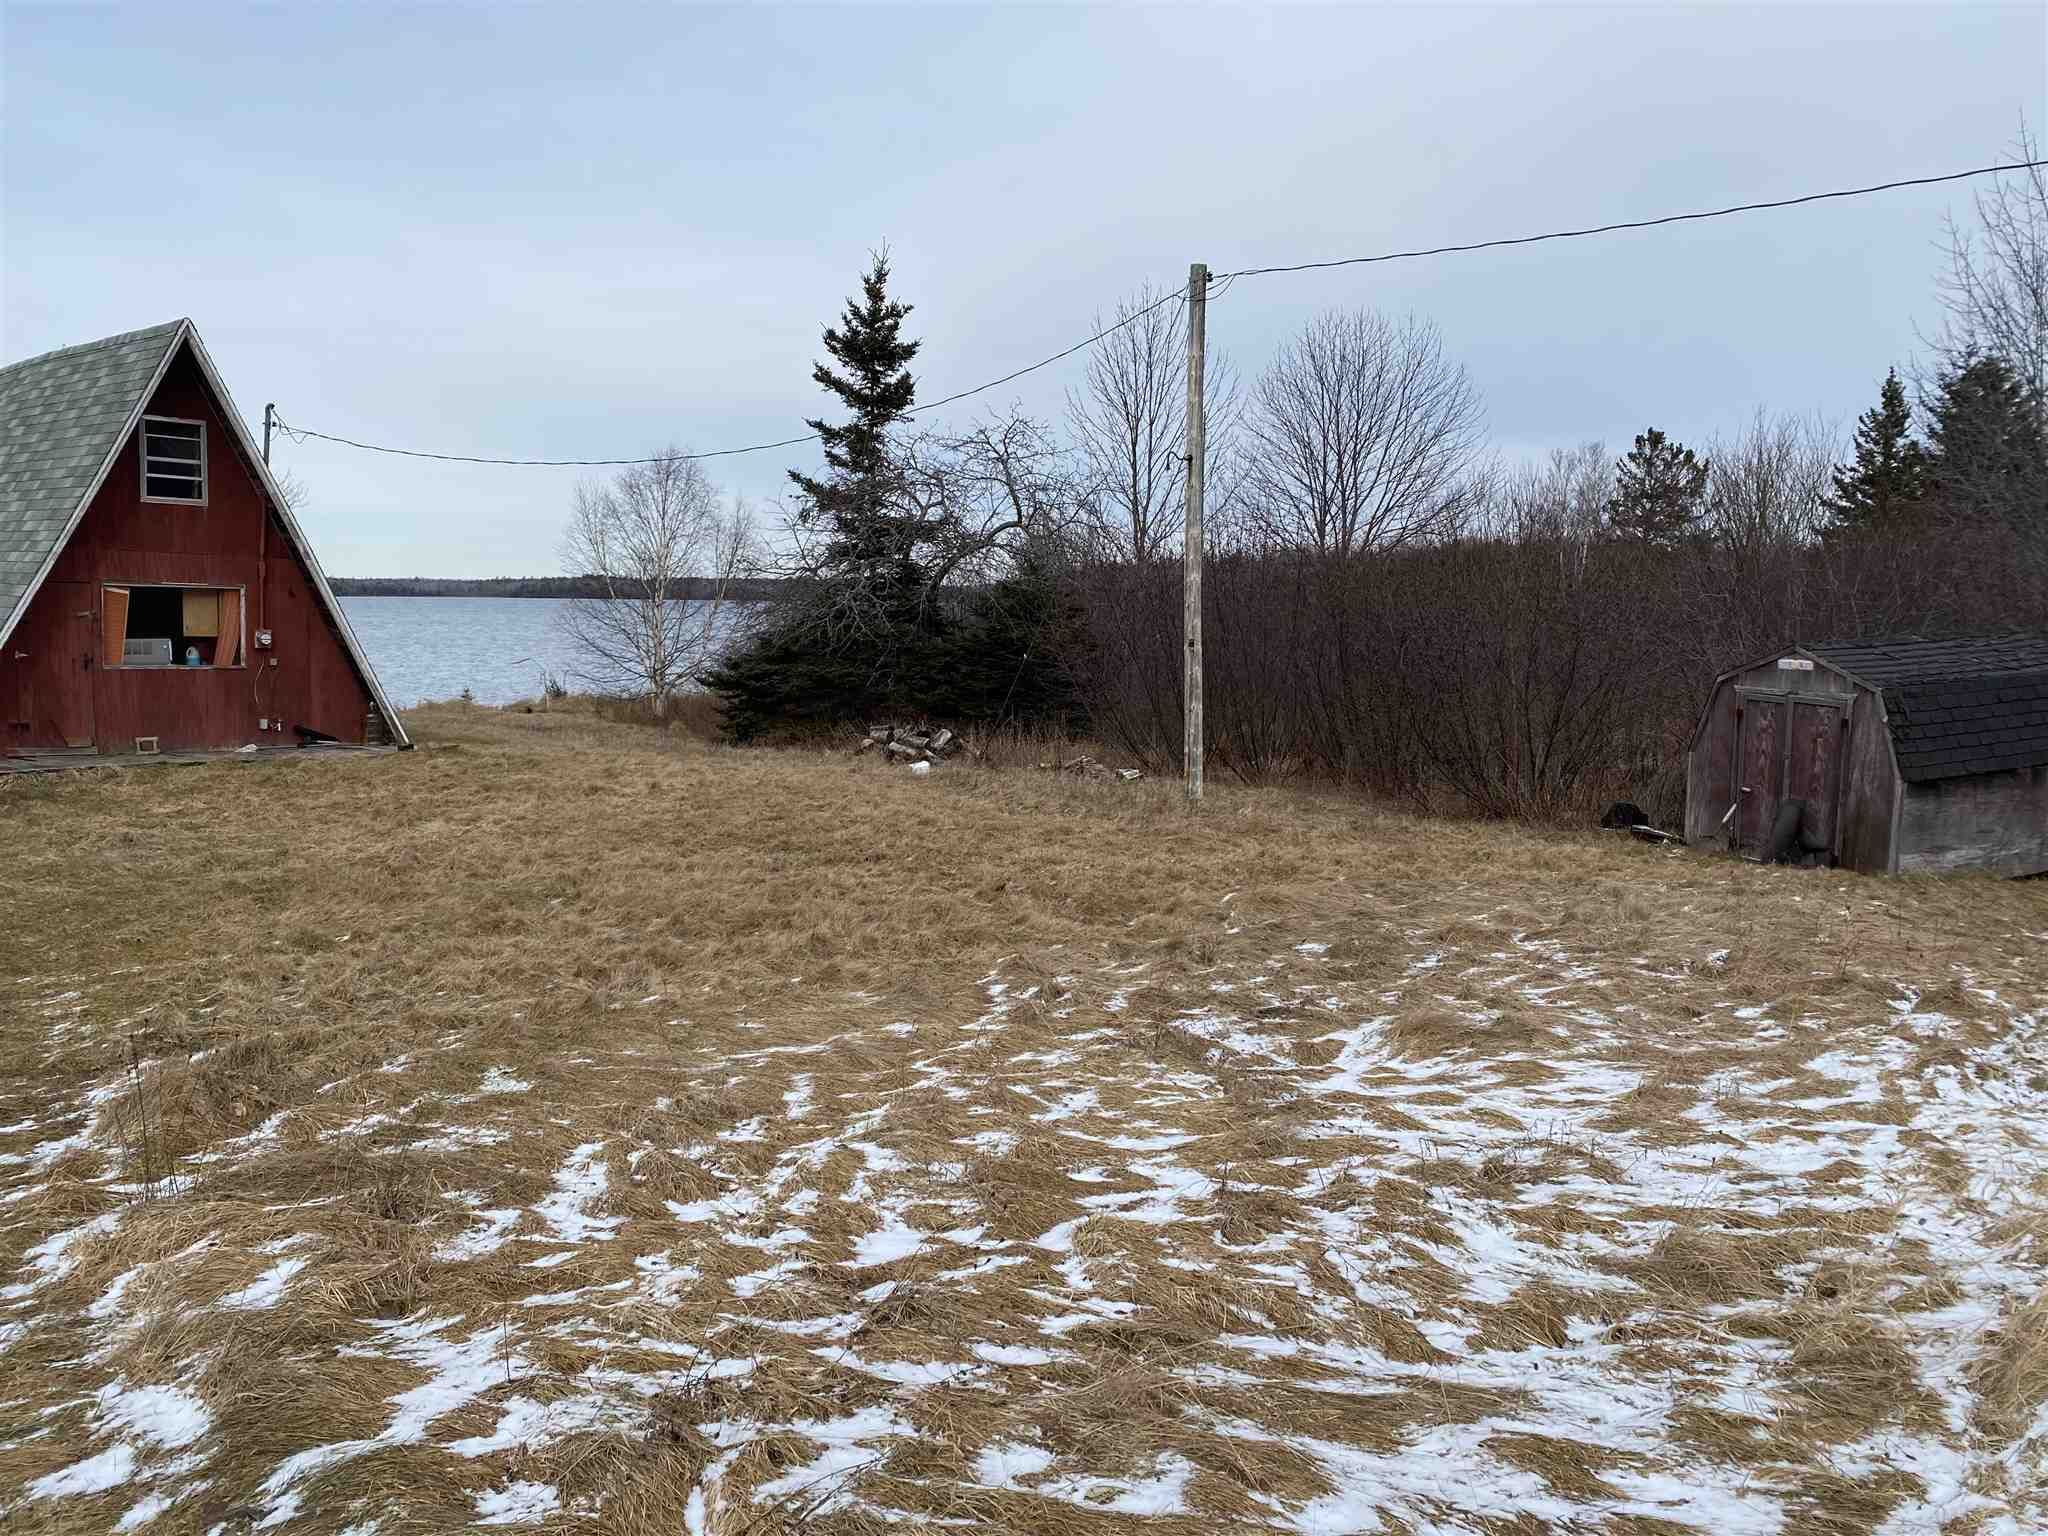 Photo 6: Photos: 8080 Marble Mountain Road in Malagawatch: 306-Inverness County / Inverness & Area Vacant Land for sale (Highland Region)  : MLS®# 202101037